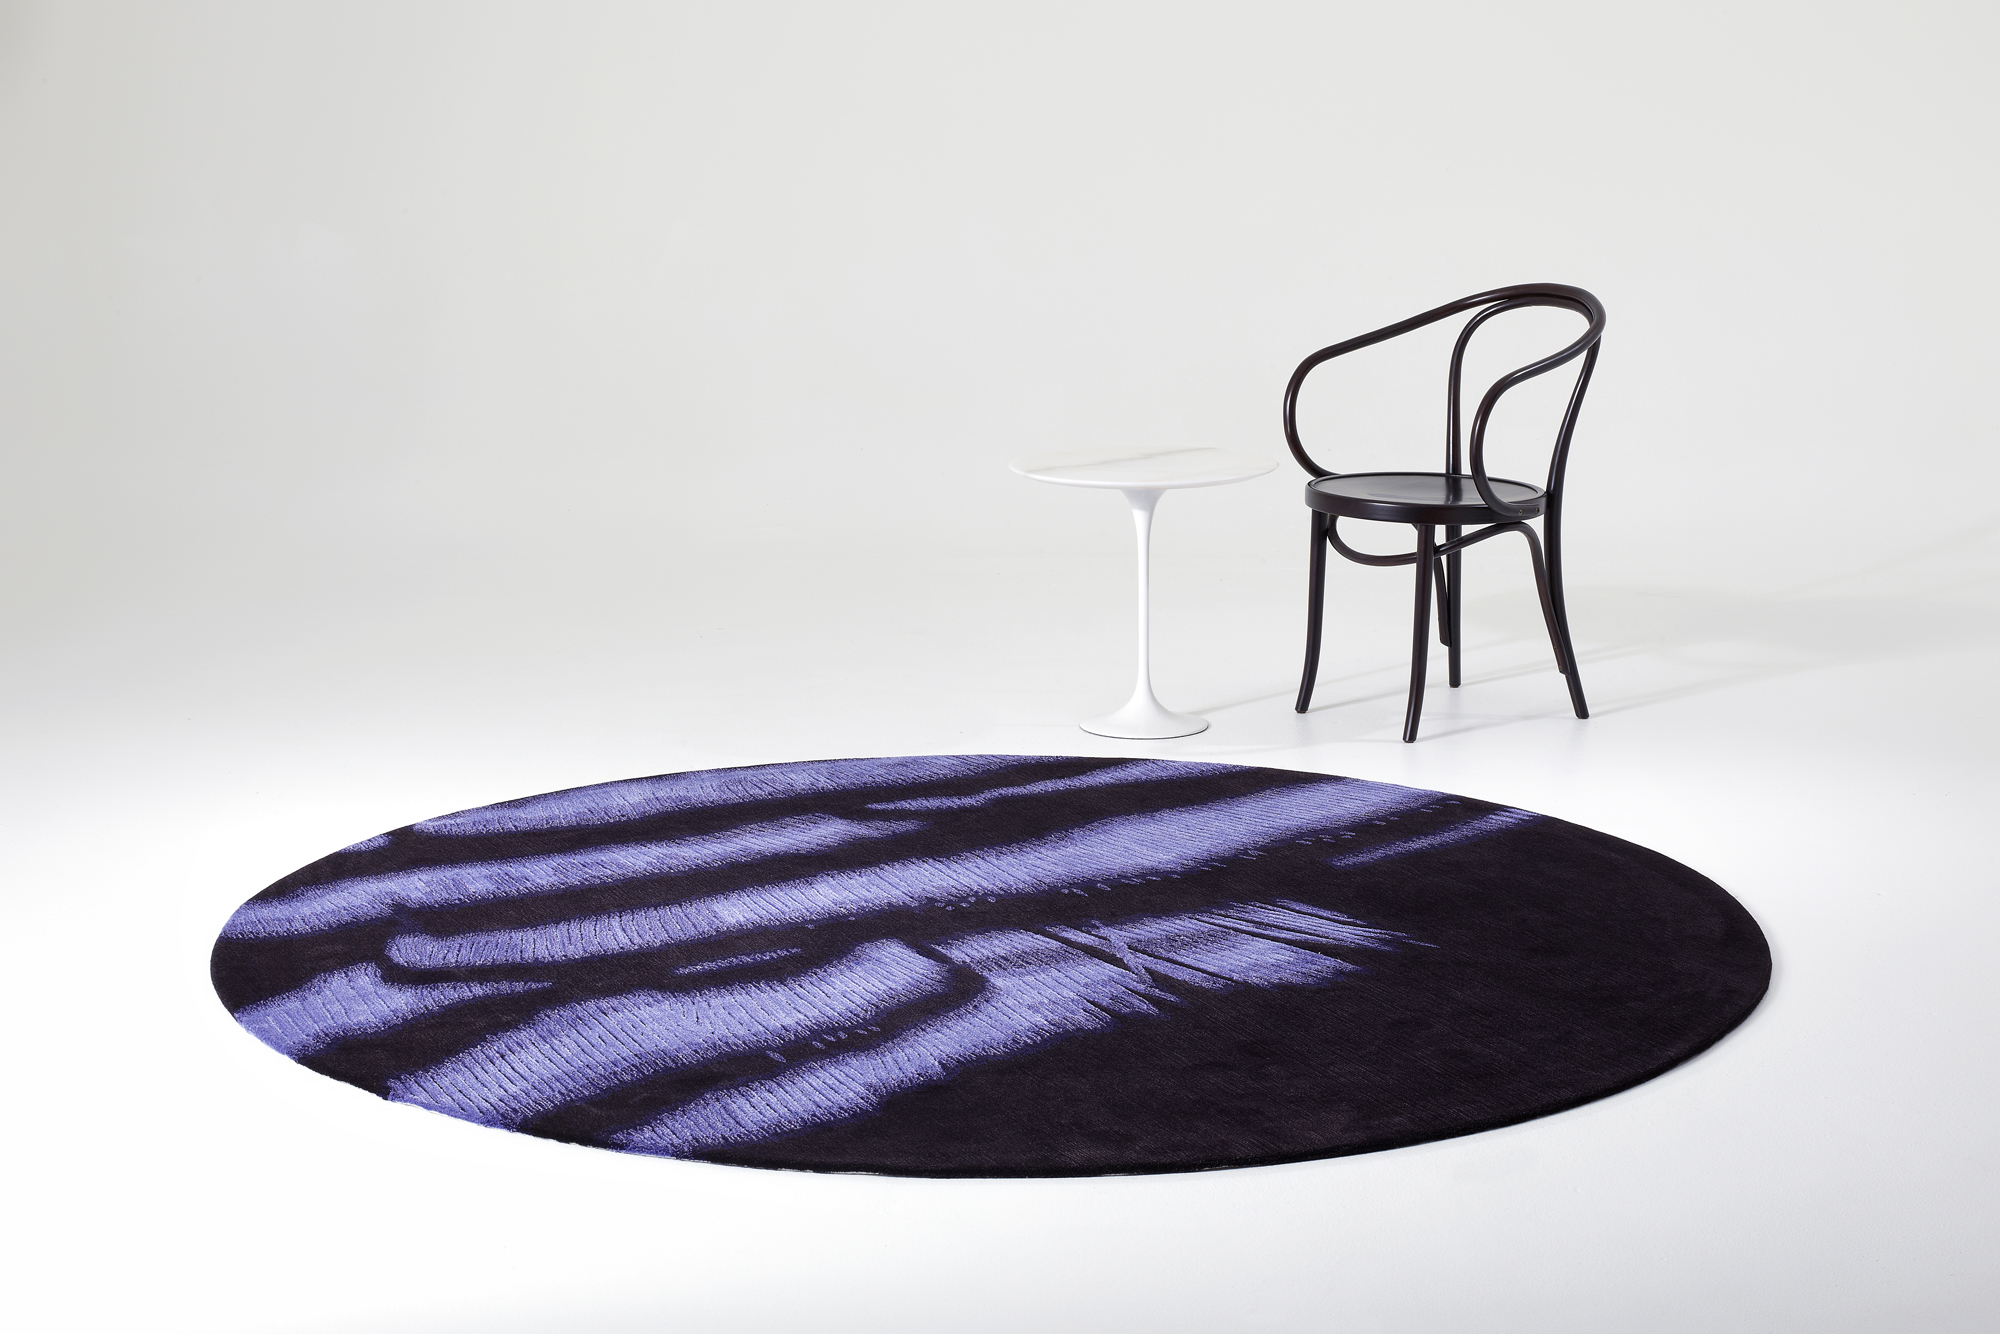 Icarus Rug 01 © Sonya Pletes for Henry Francis Design